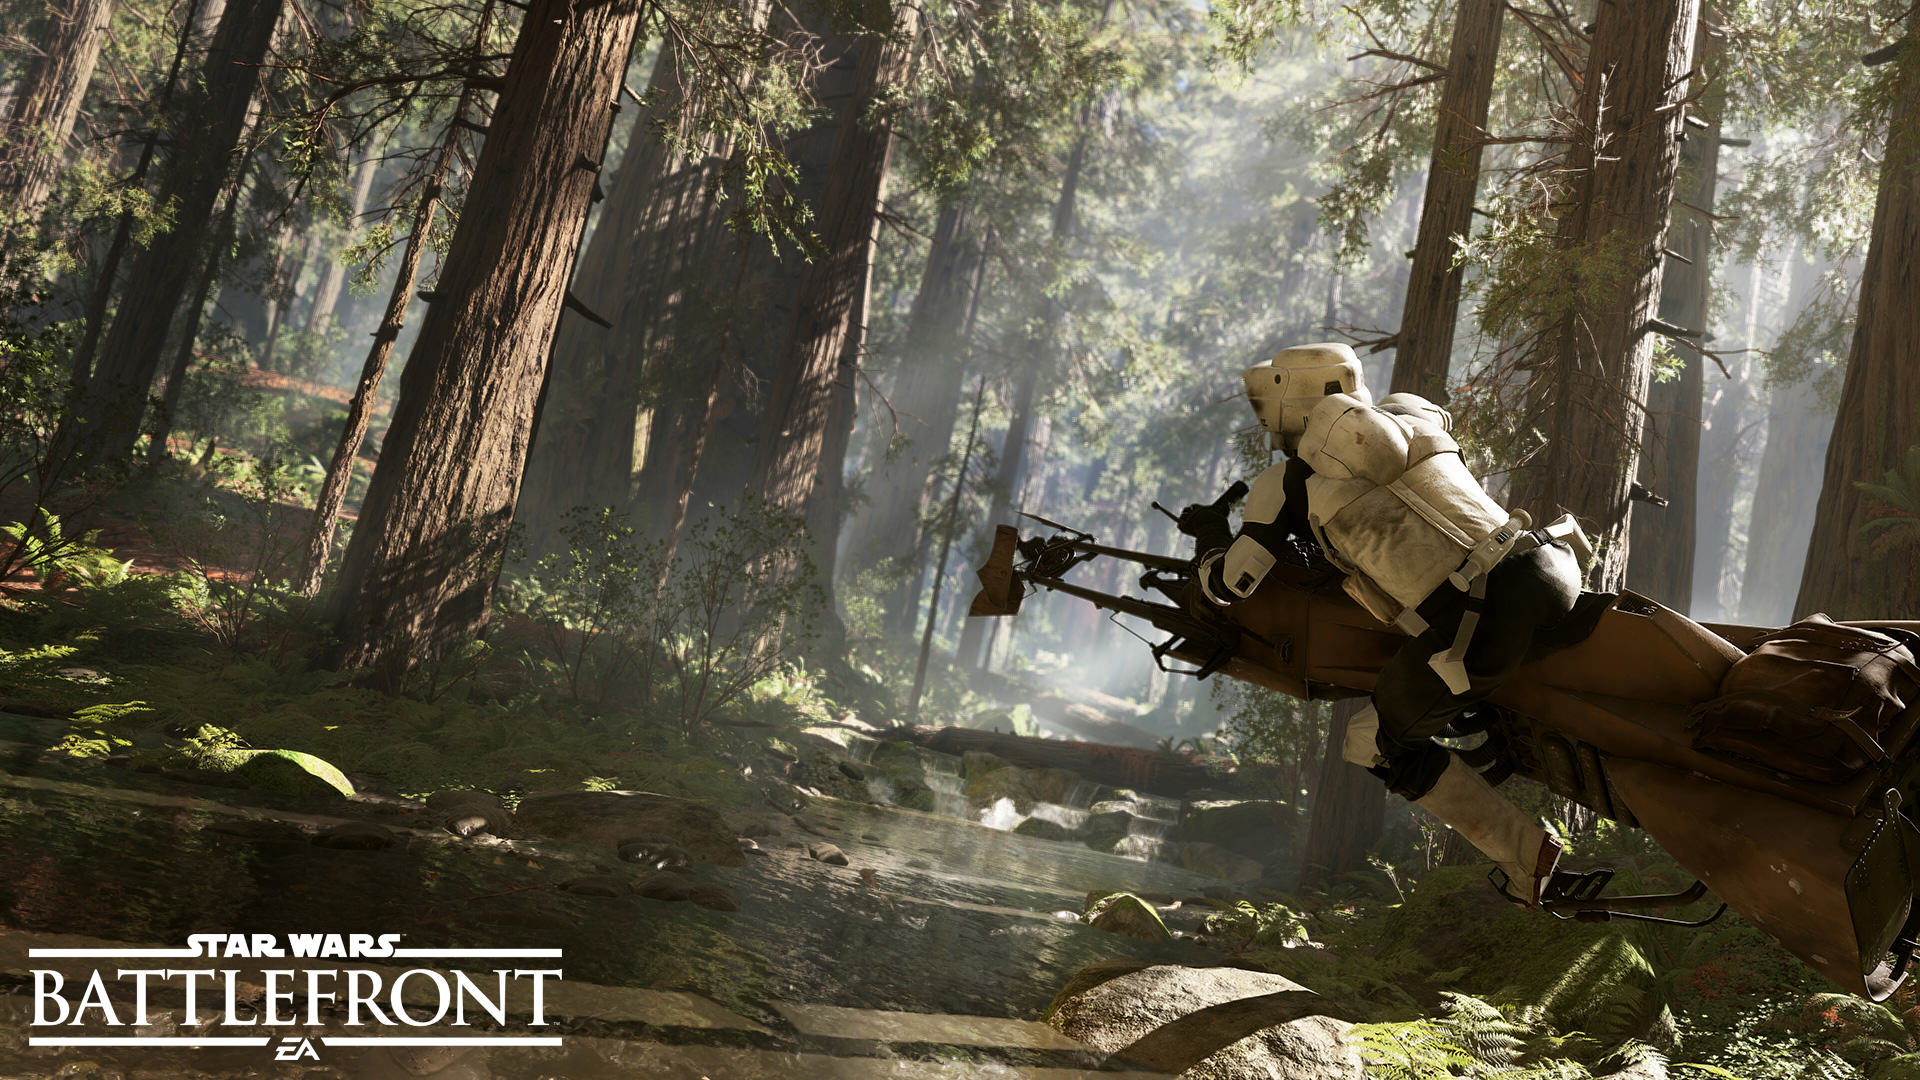 Star Wars: Battlefront Looks Stunning In These Desktop Backgrounds And Images UNILAD 8htMNBk Imgur3